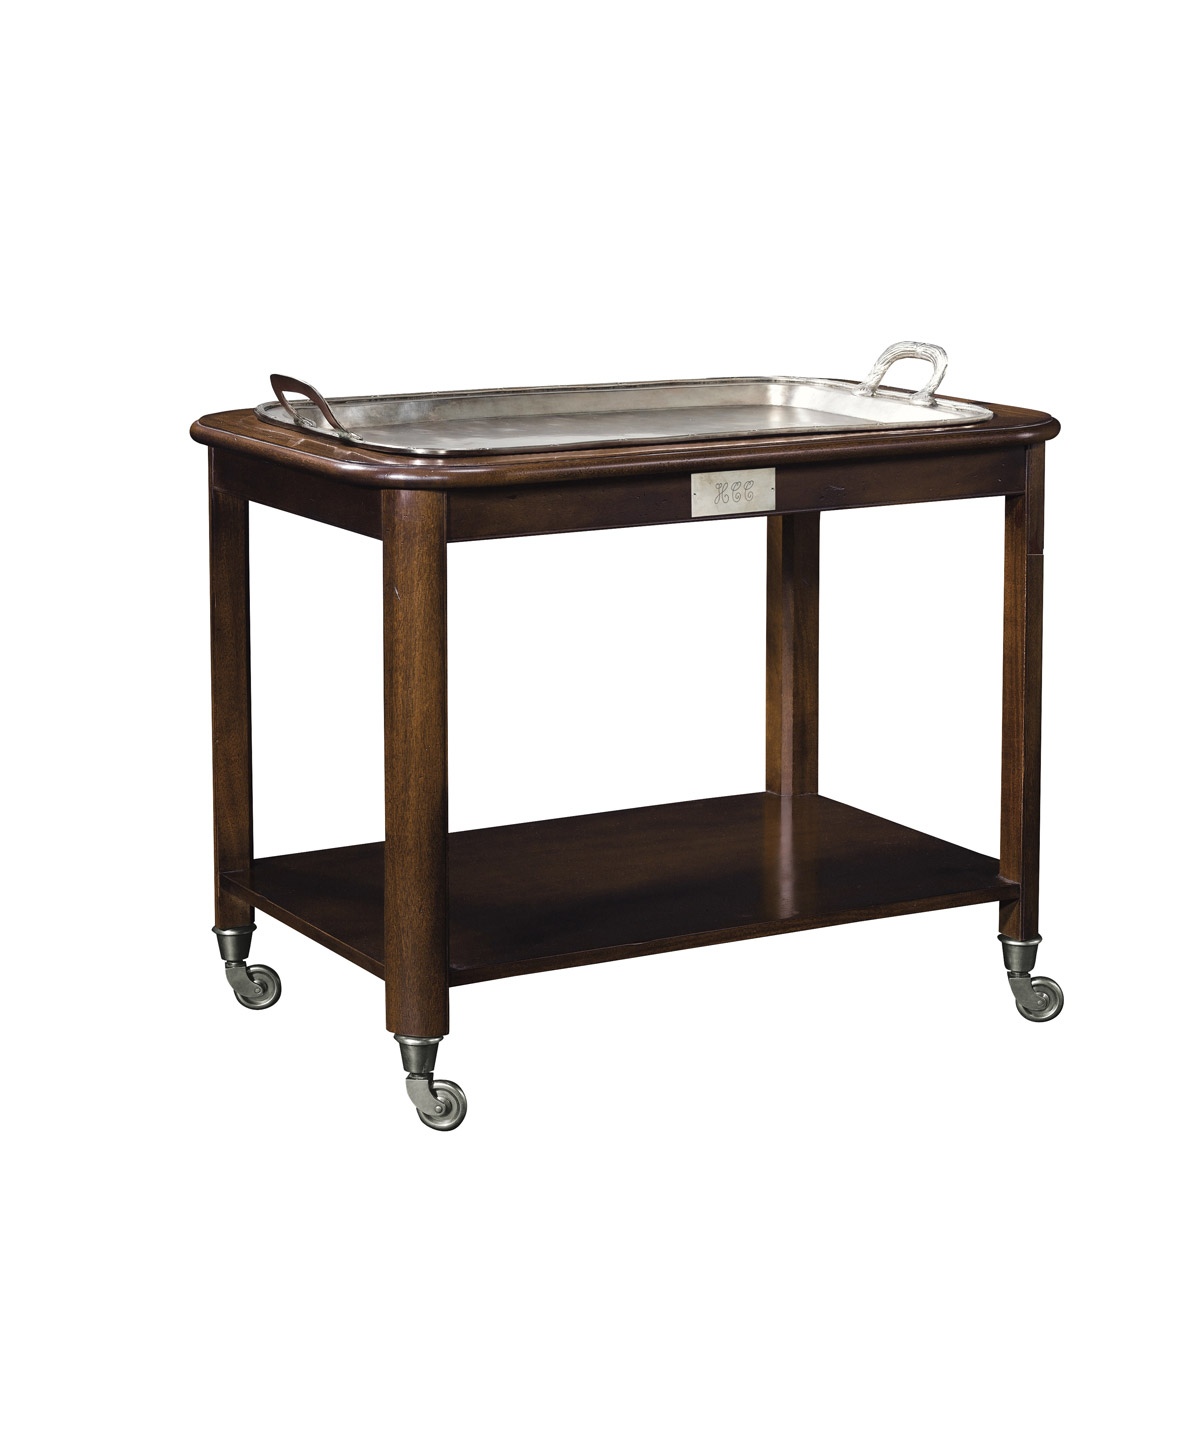 Hotel Trolley Serving Cart